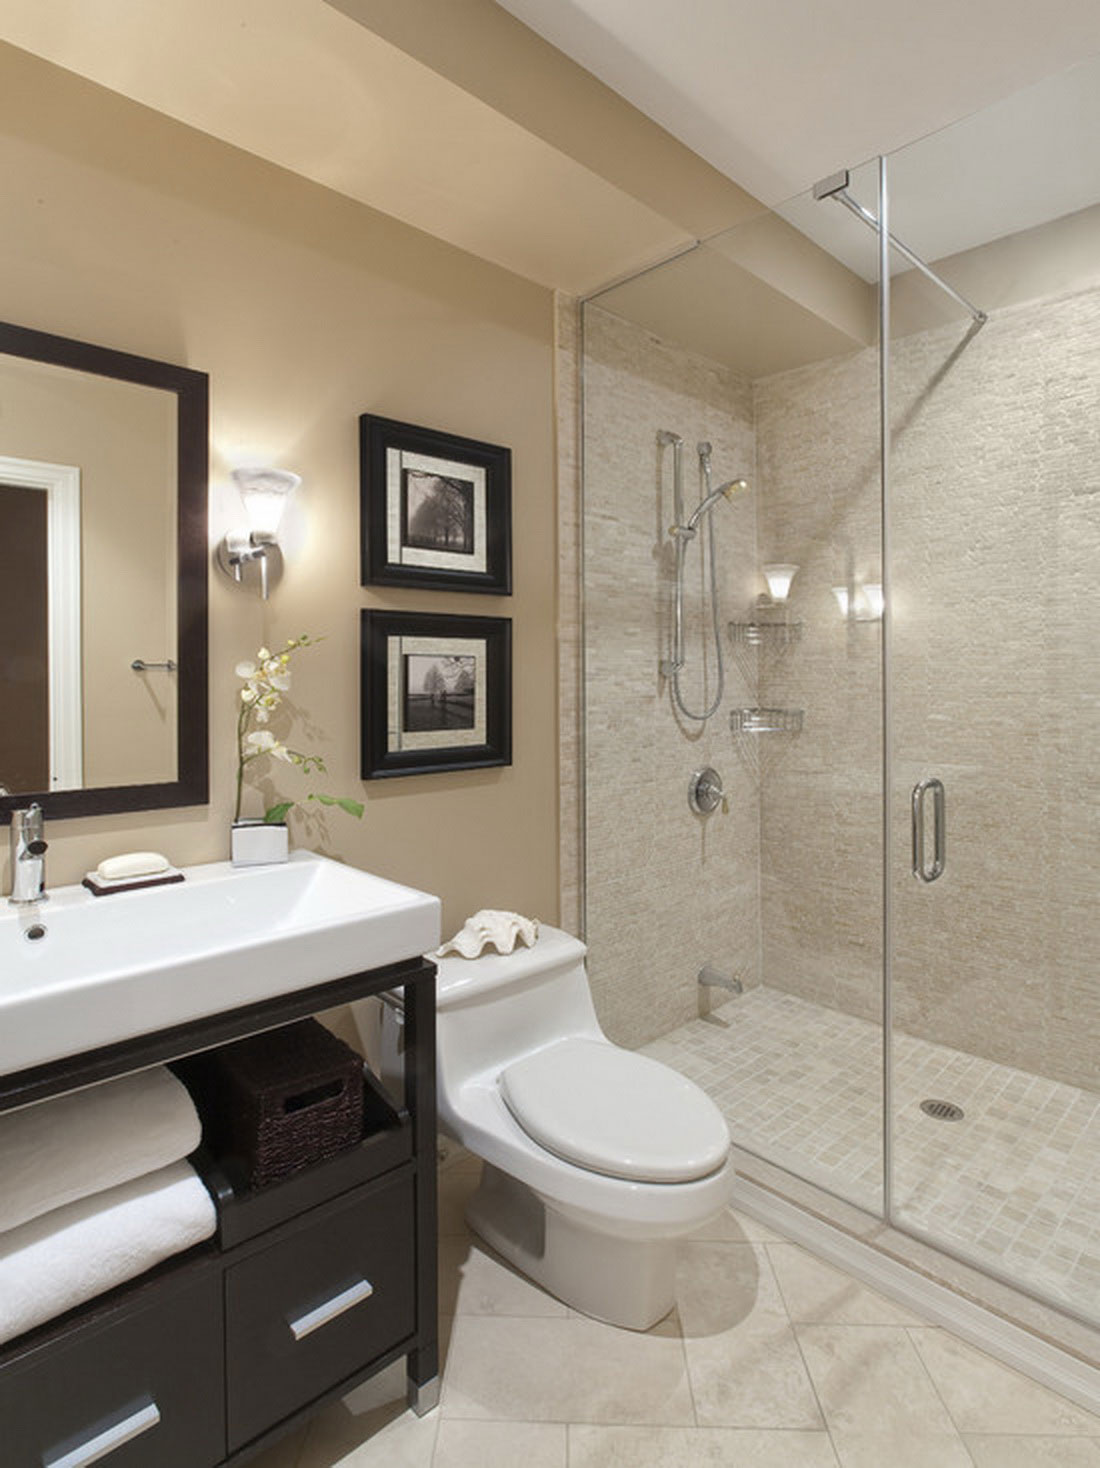 Charmant 9 Photos Of The 9 Top Notch Contemporary Small Bathroom Design